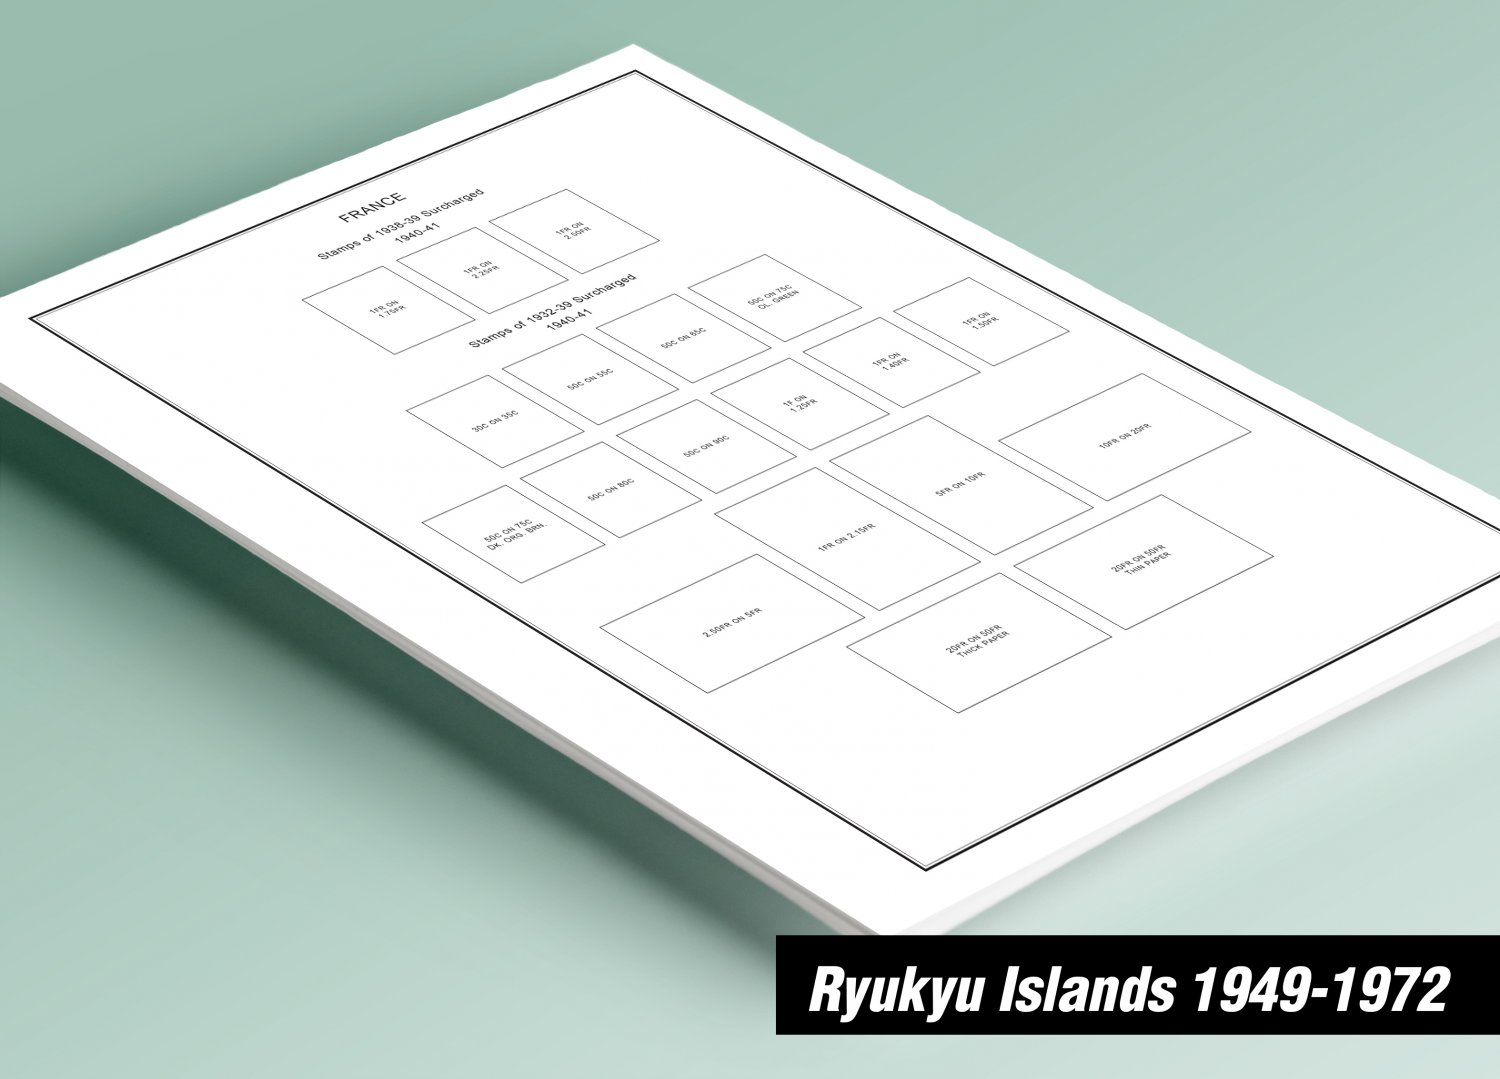 PRINTED RYUKYU ISLANDS 1949-1972 STAMP ALBUM PAGES (23 pages)